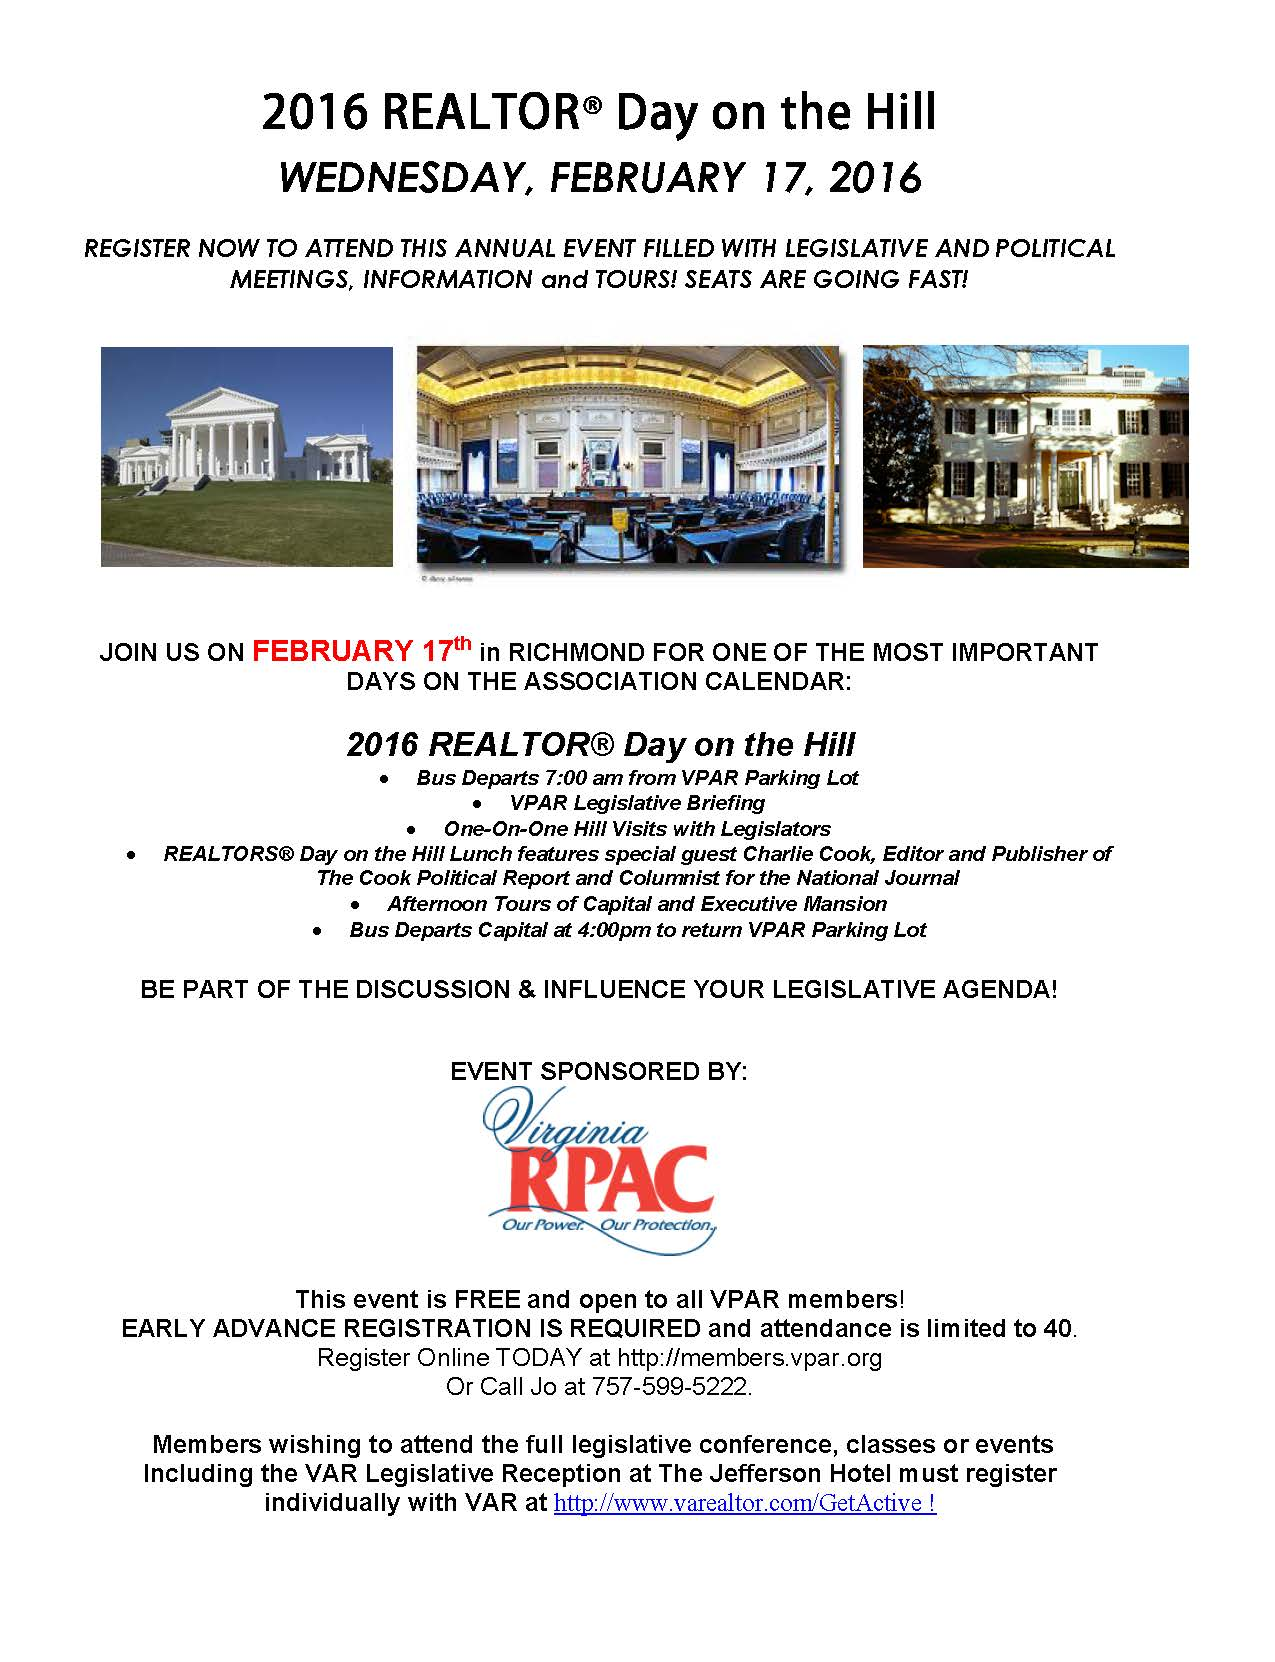 VPAR REALTOR DAY Marketing Piece